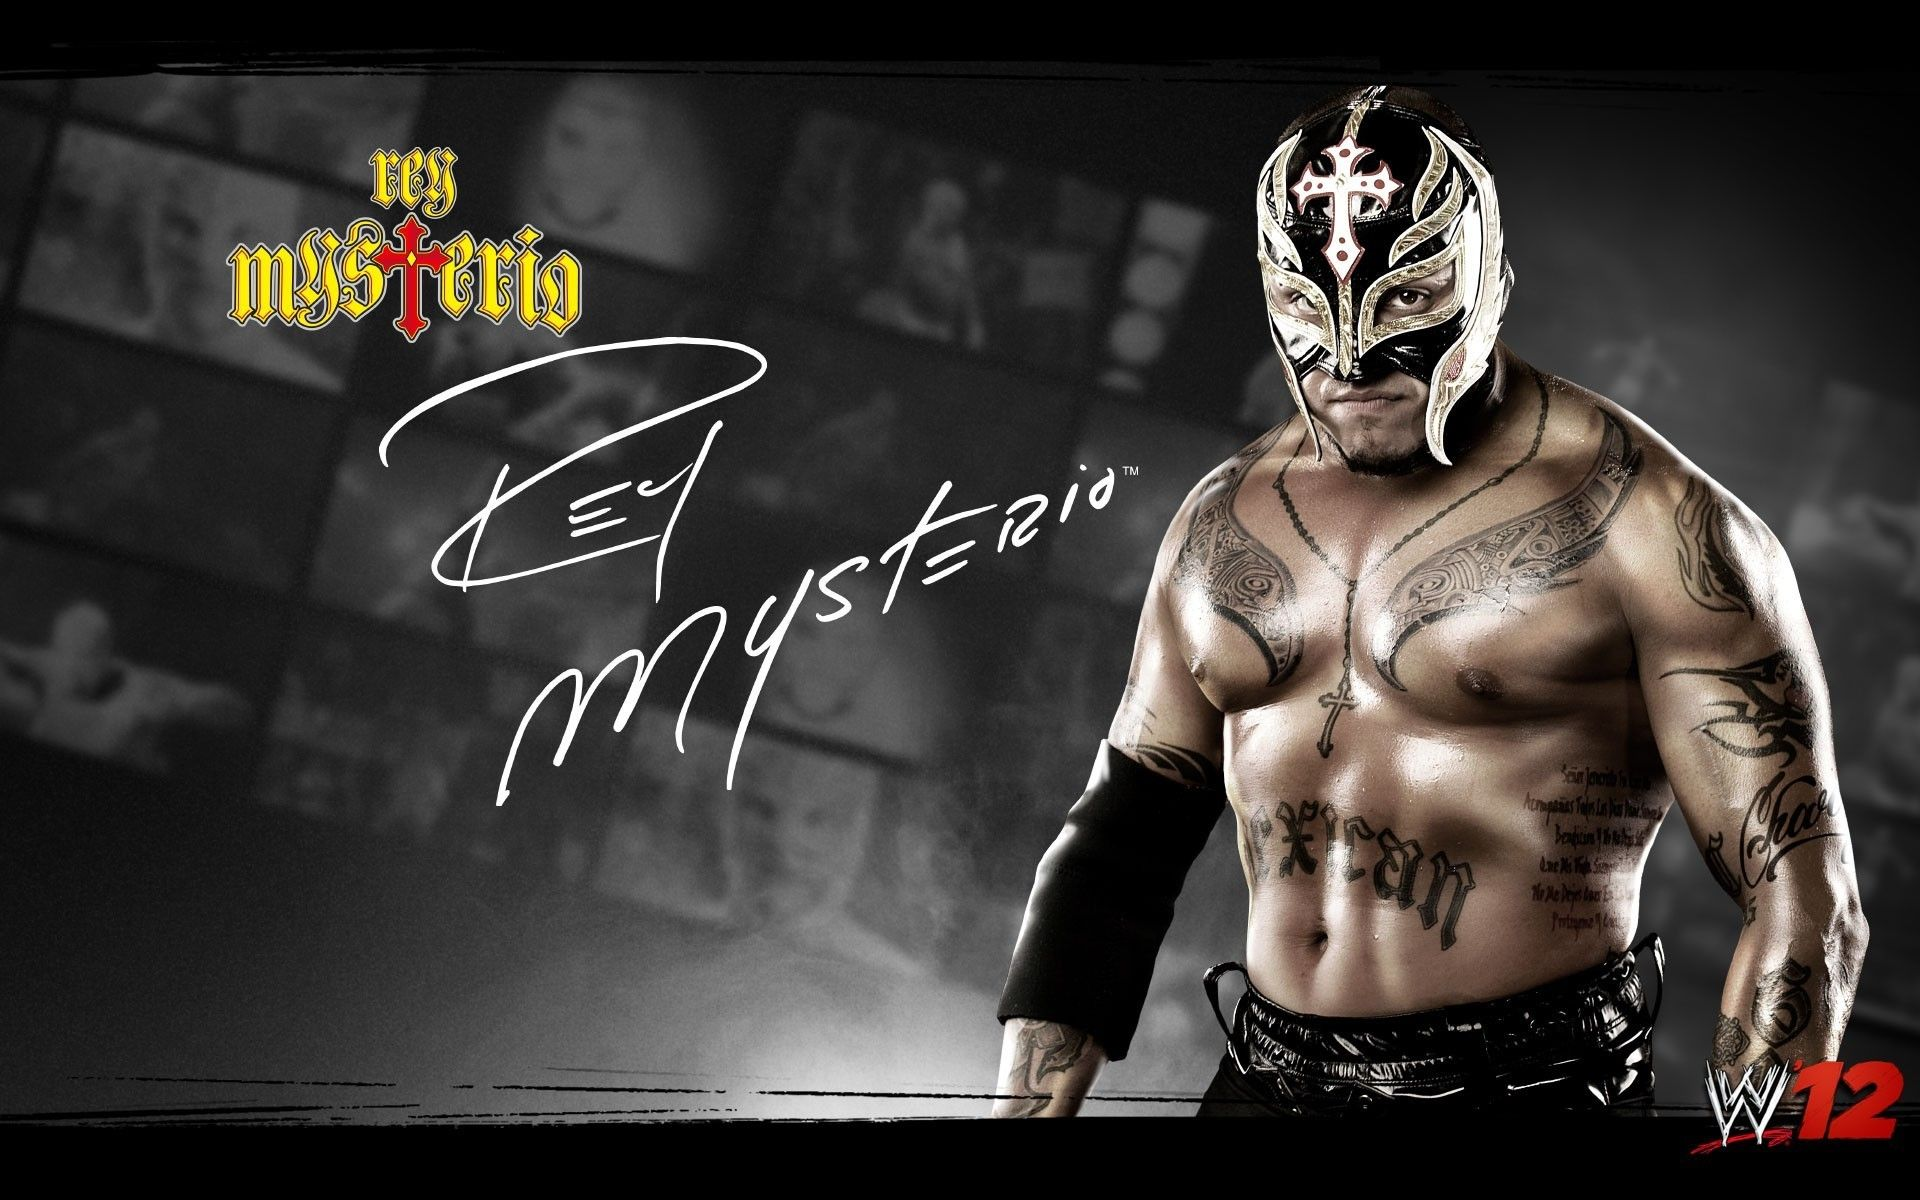 1920x1200 Rey Mysterio 2018 Full HD Wallpaper ·①